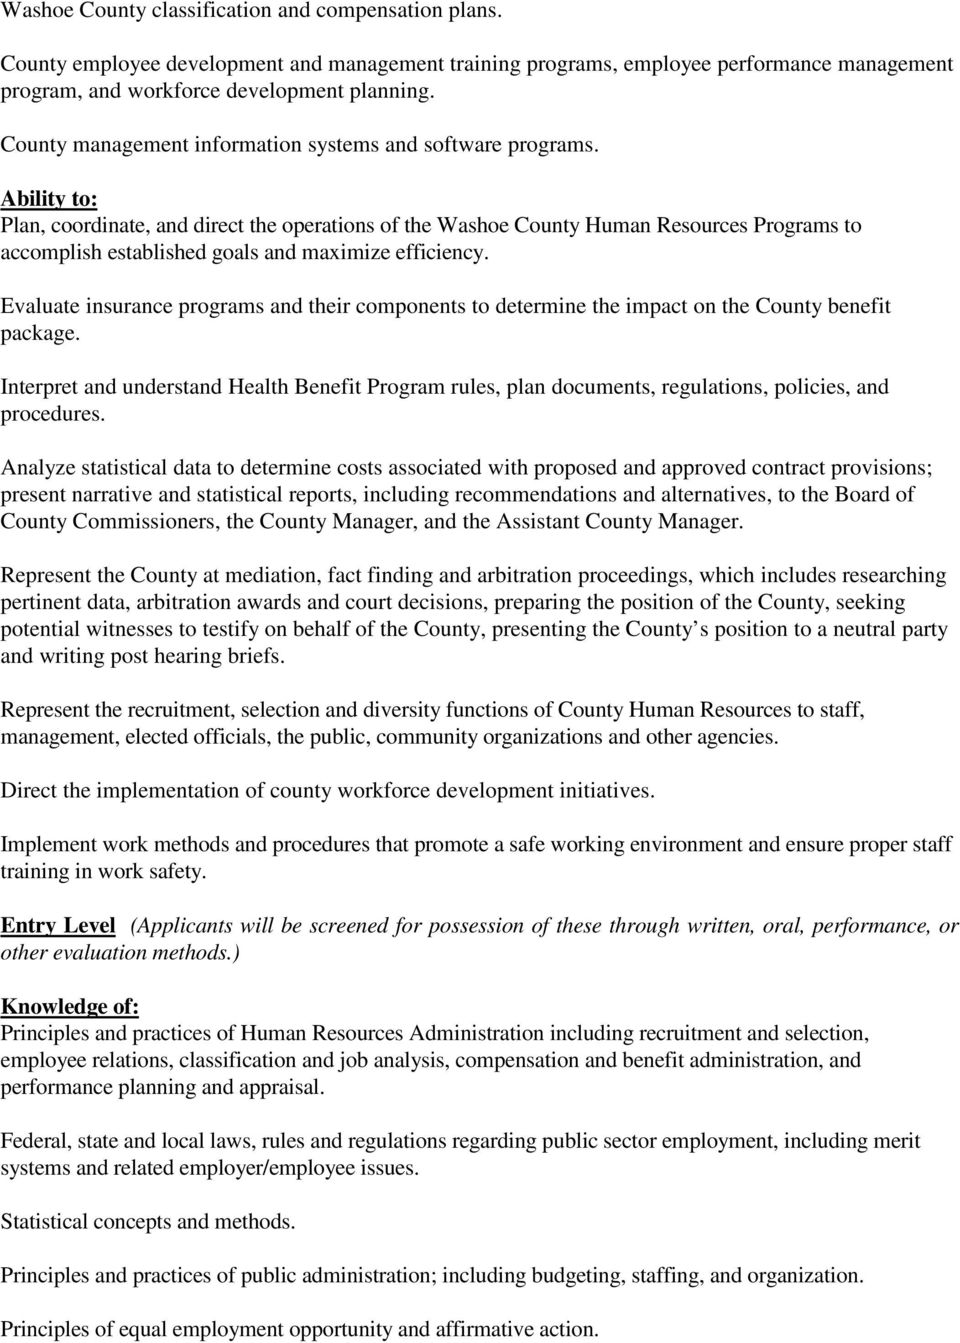 Ability to: Plan, coordinate, and direct the operations of the Washoe County Human Resources Programs to accomplish established goals and maximize efficiency.